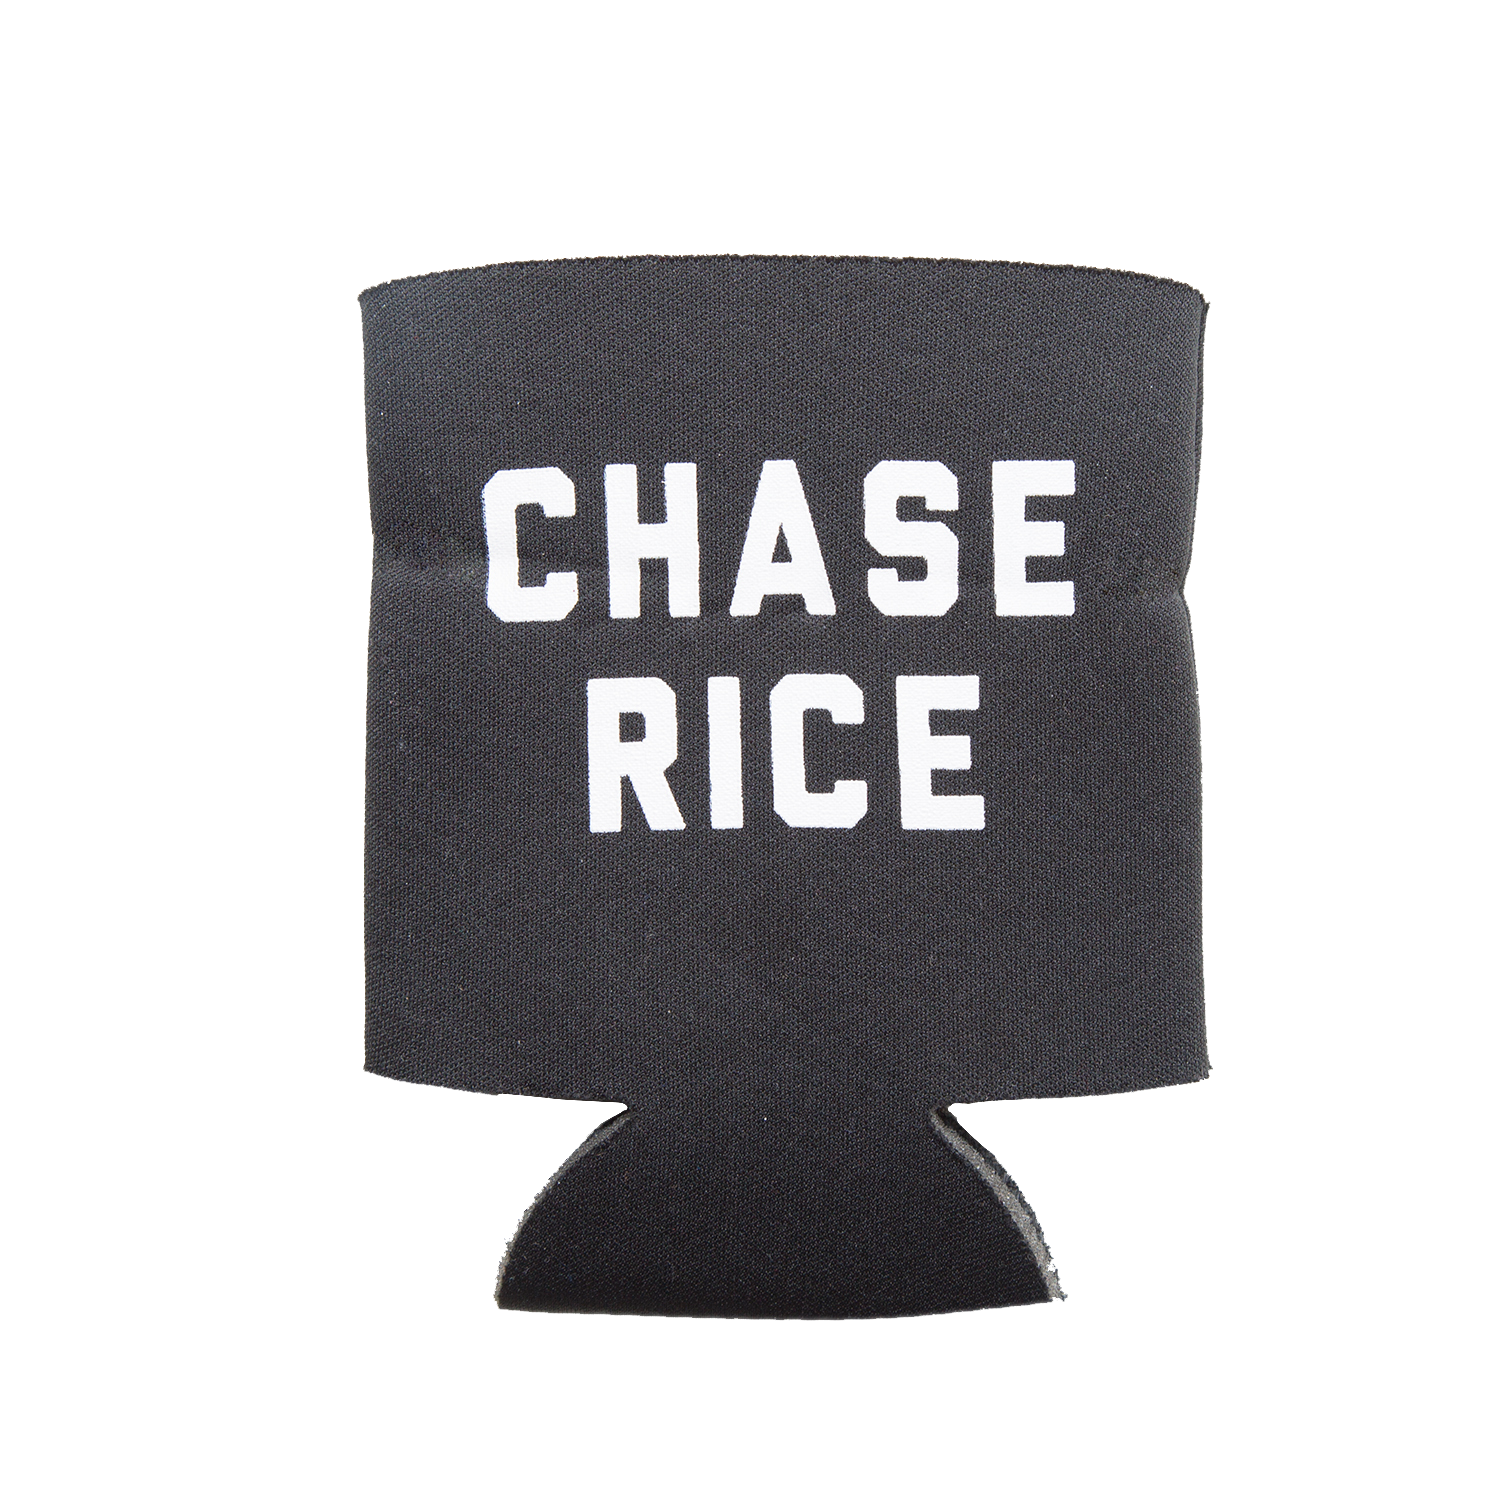 Chase rice png. Tour koozie black